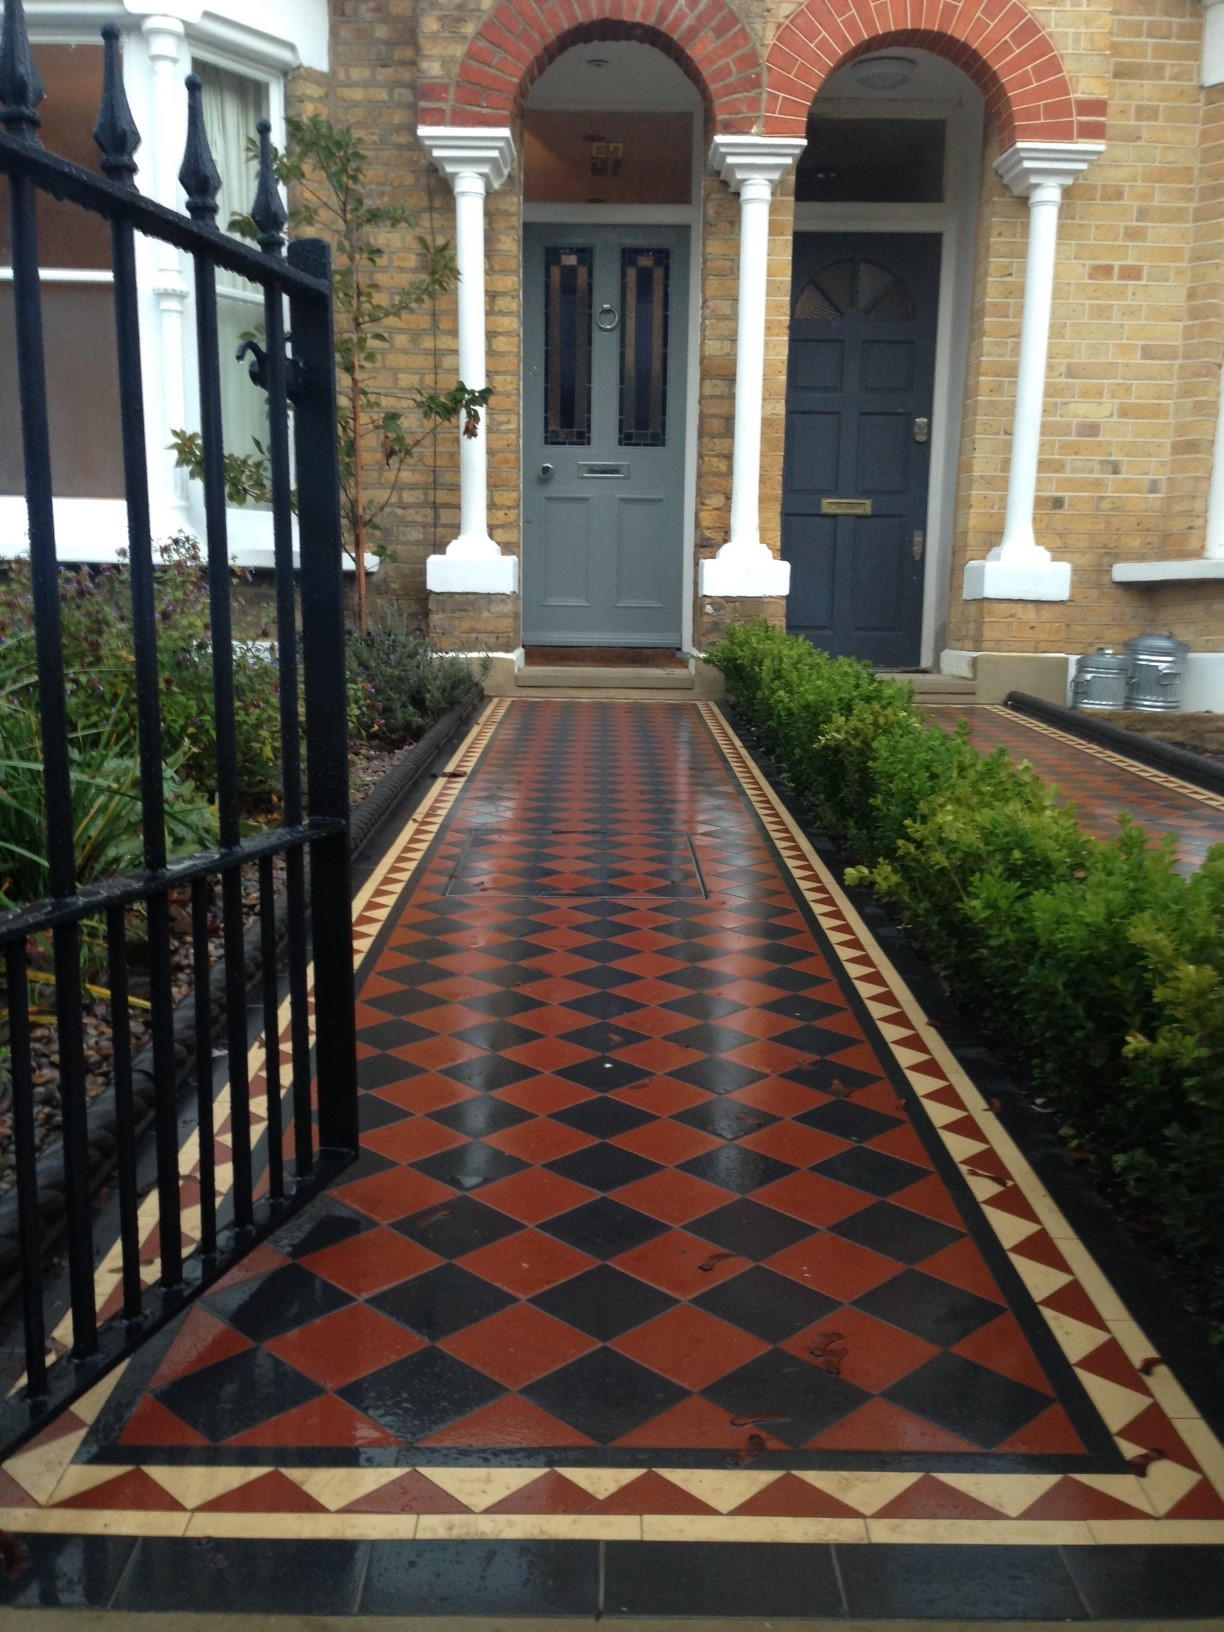 Brixton Herne Hill Victorian Mosaic Tile Path black and red tile with Yorkstone pier cap entrance stone and imperial yellow brick london stock wall (6)